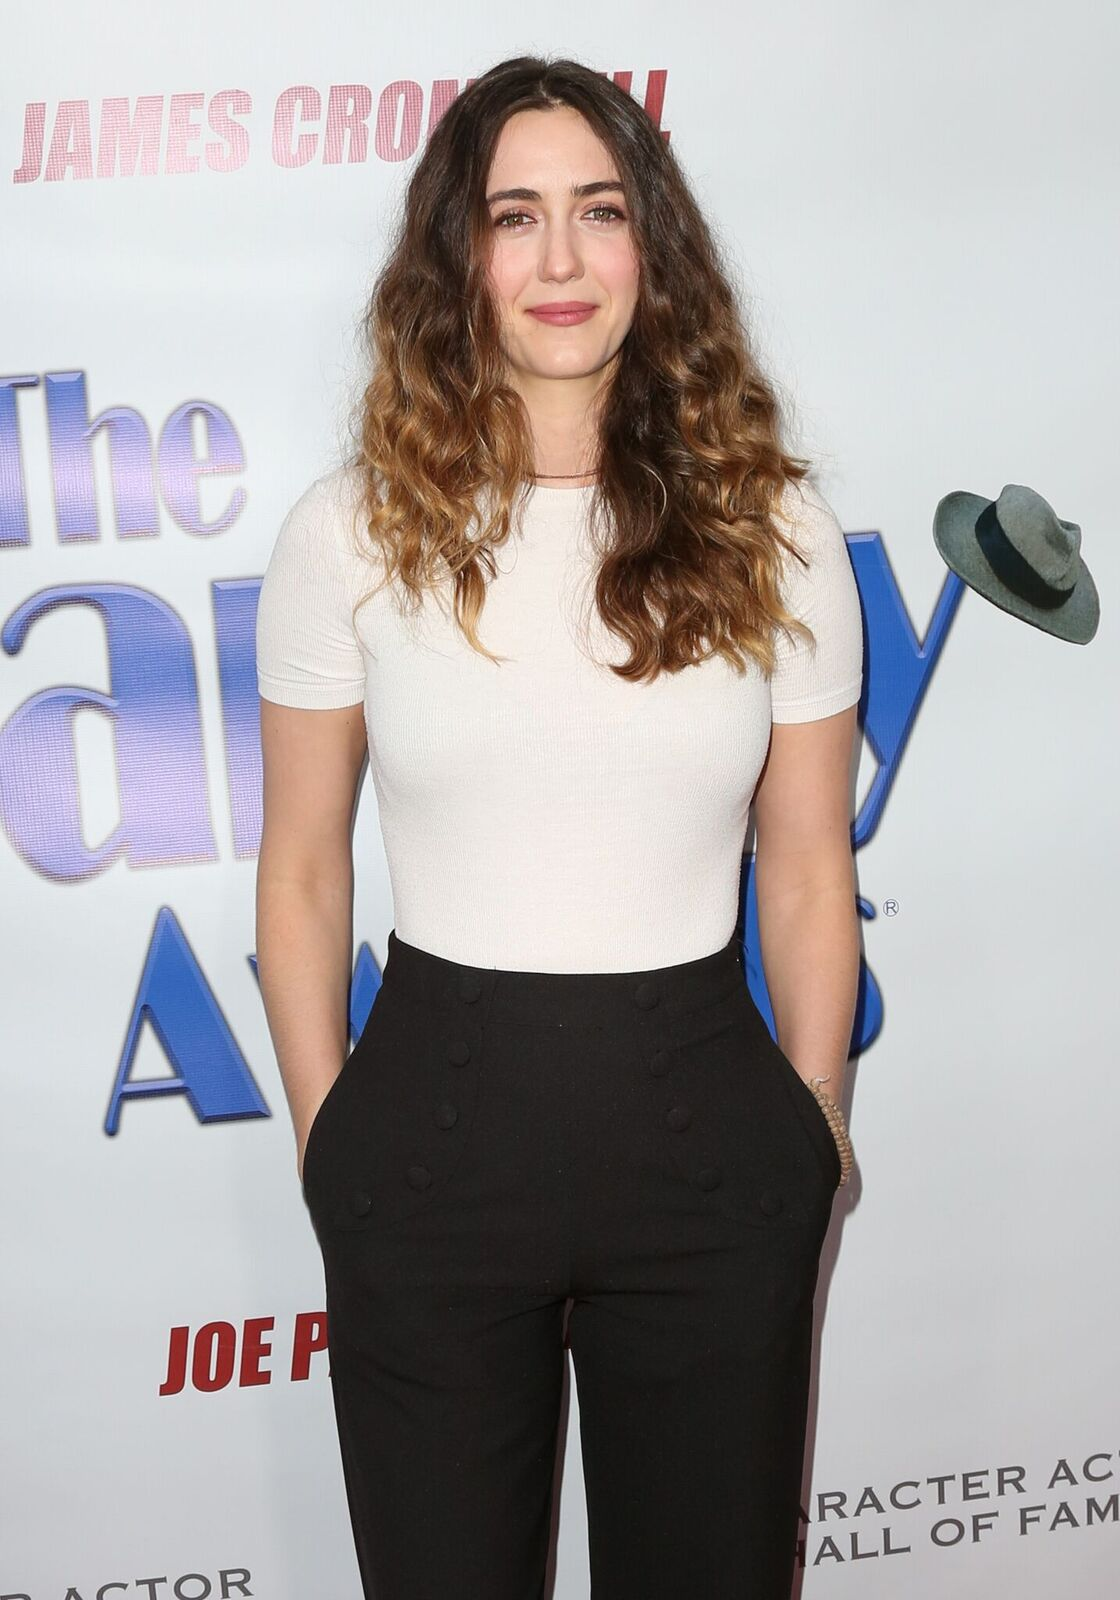 Actress Madeline Zima attends the 2018 Carney Awards at The Broad Stage on October 28, 2018 | Photo: Getty Images